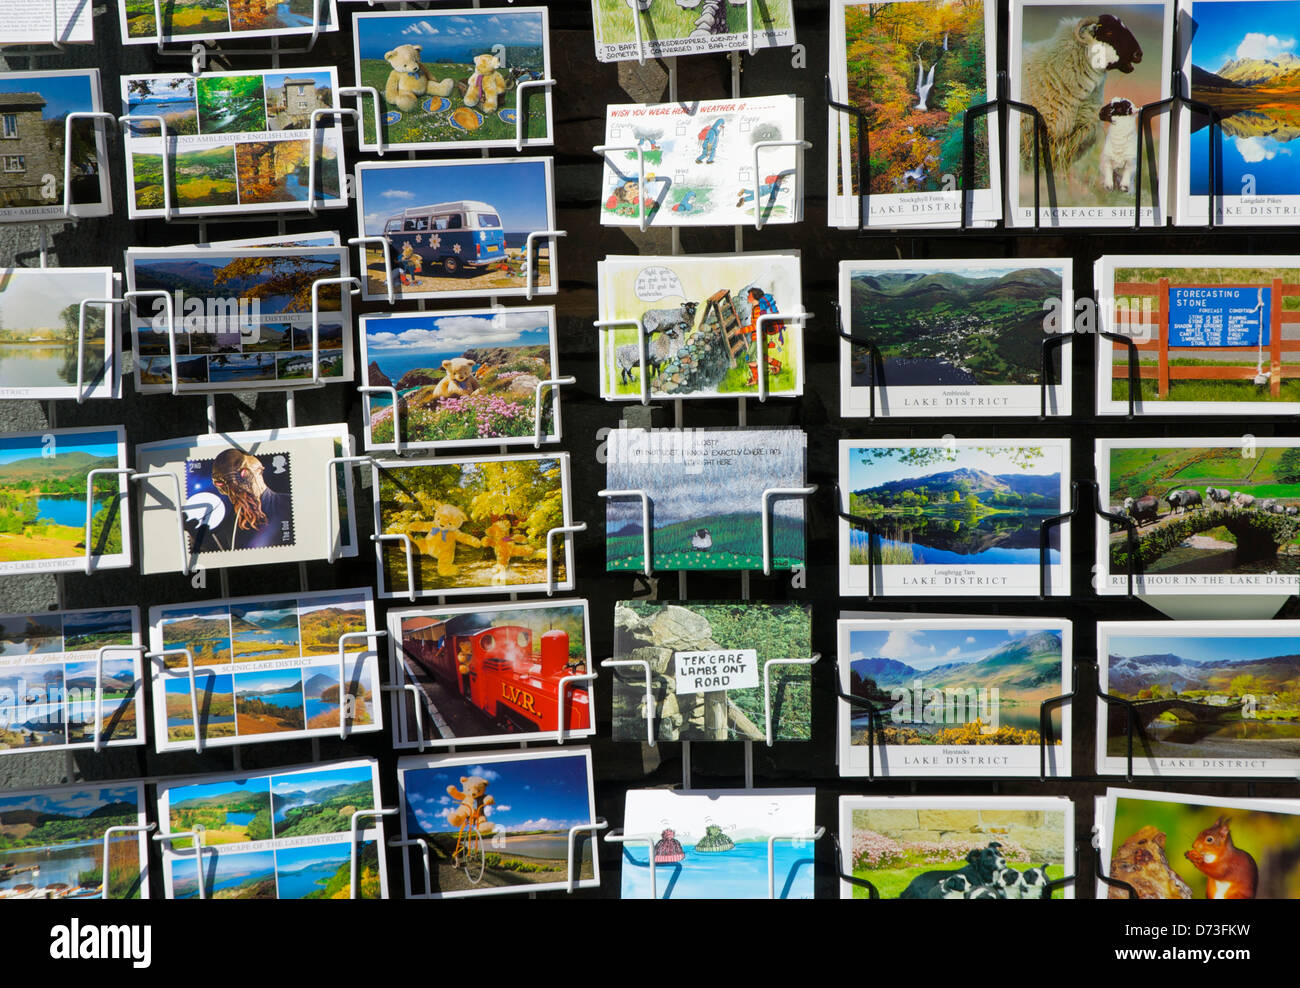 Lake District postcards in a rack, on sale outside shop, Cumbria, England UK - Stock Image